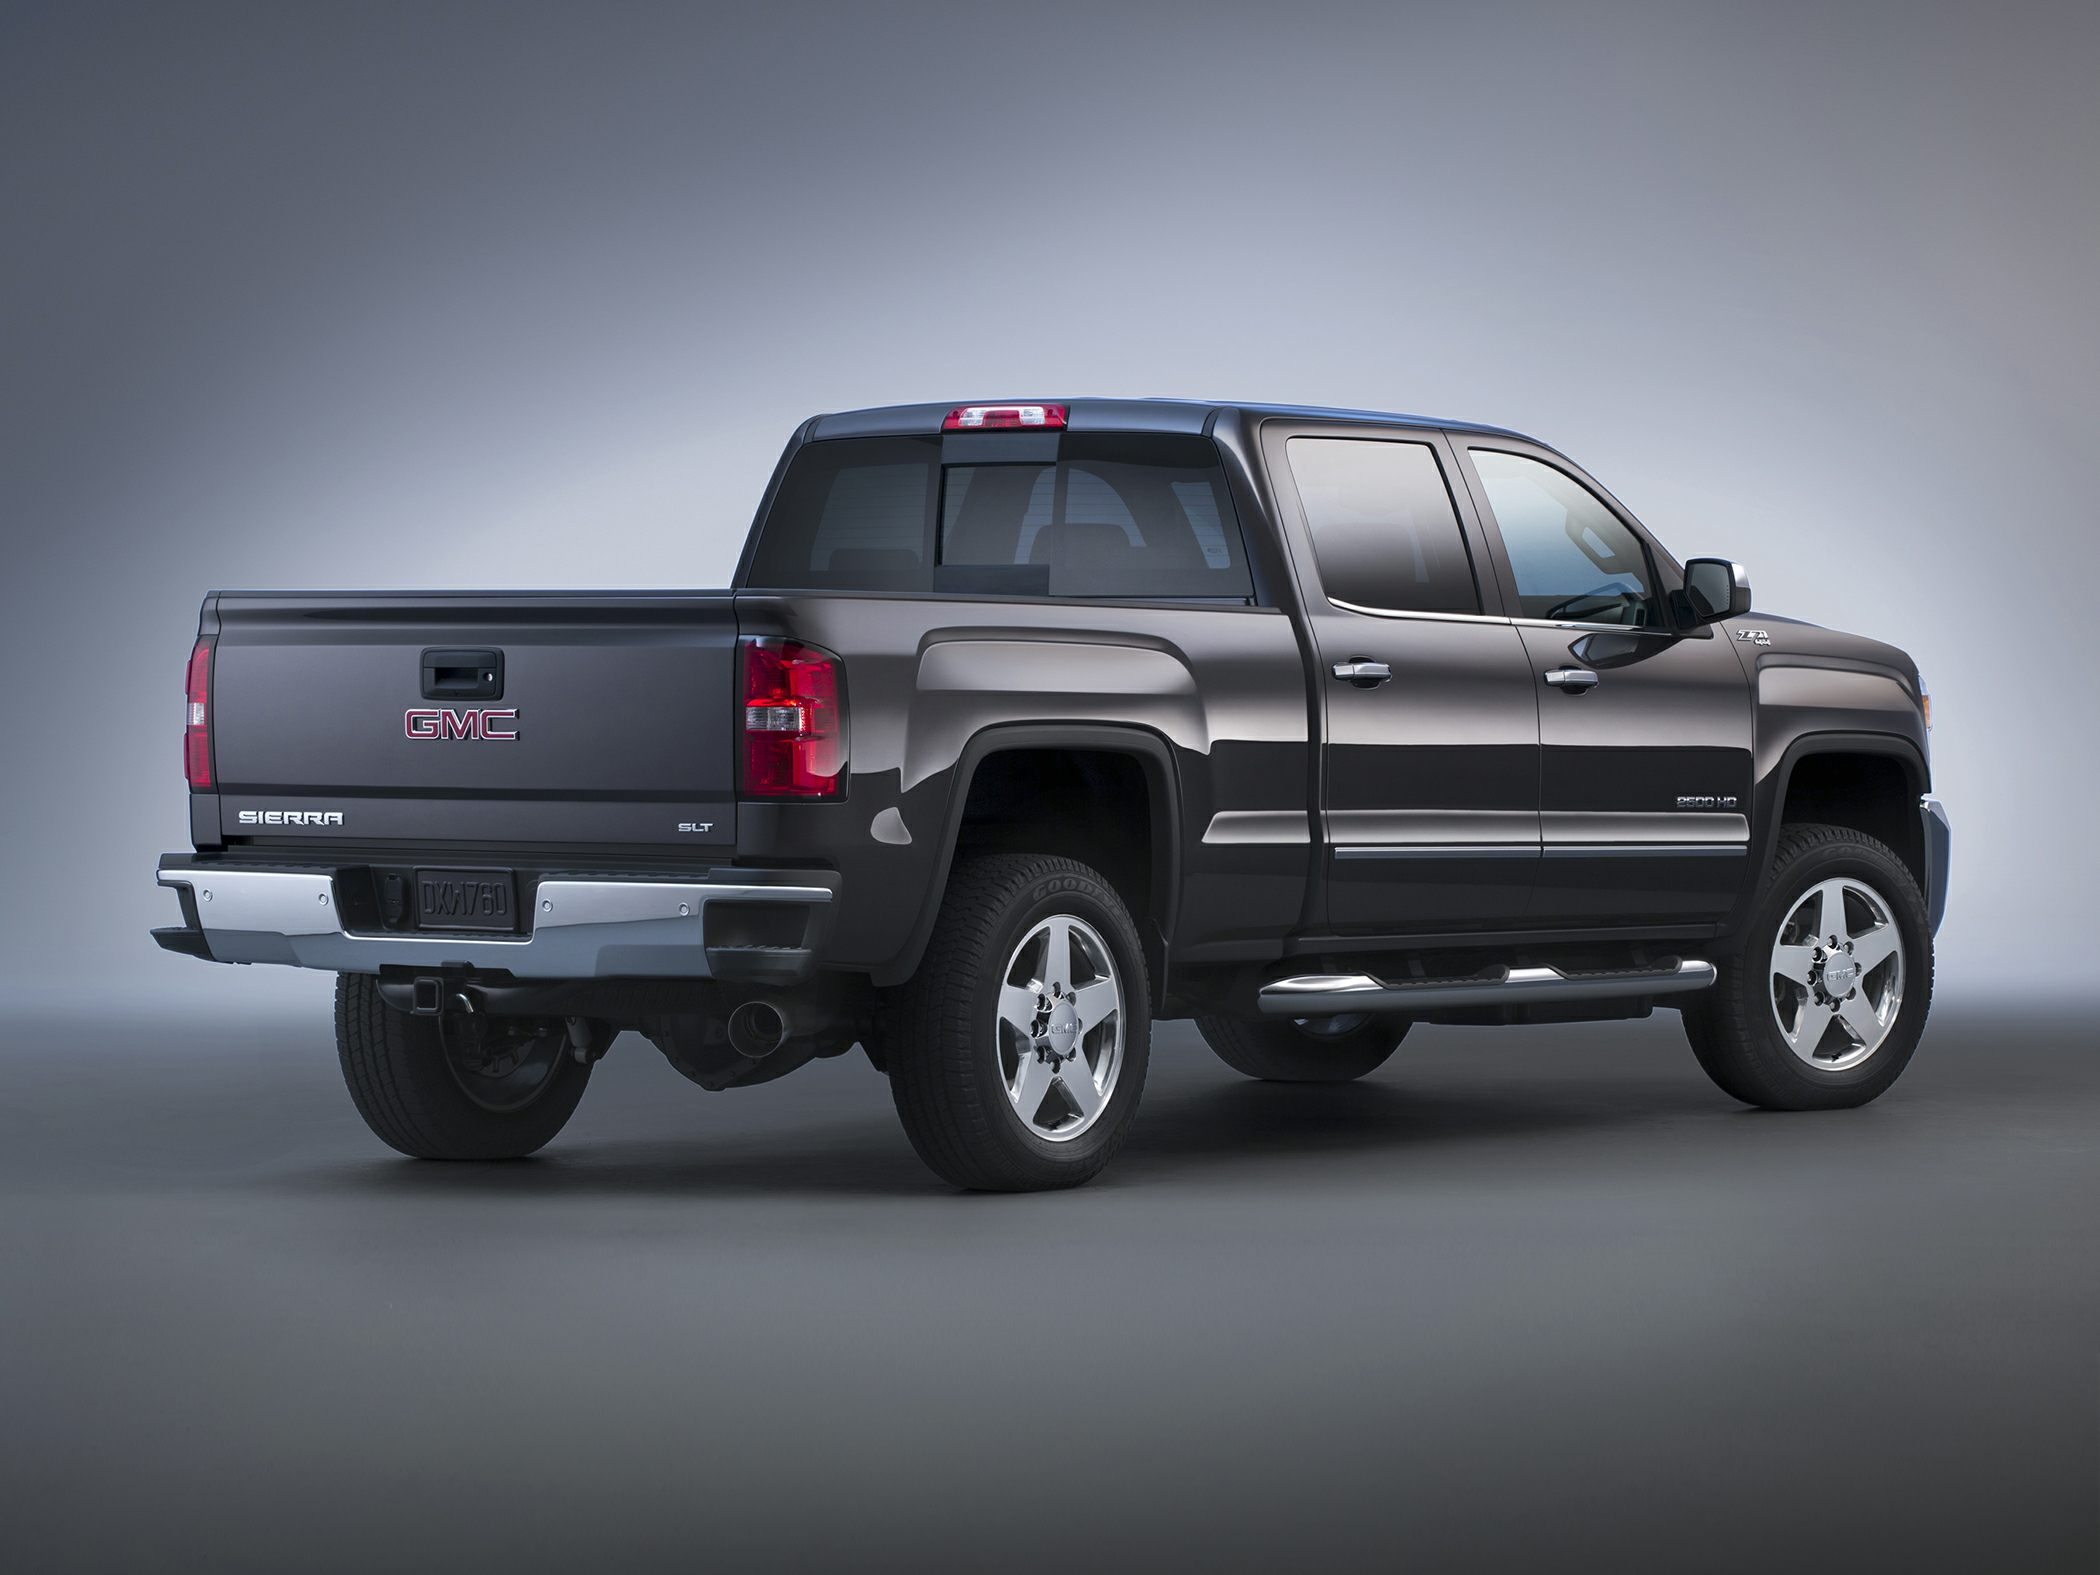 2014 GMC Sierra 3500hd Glam